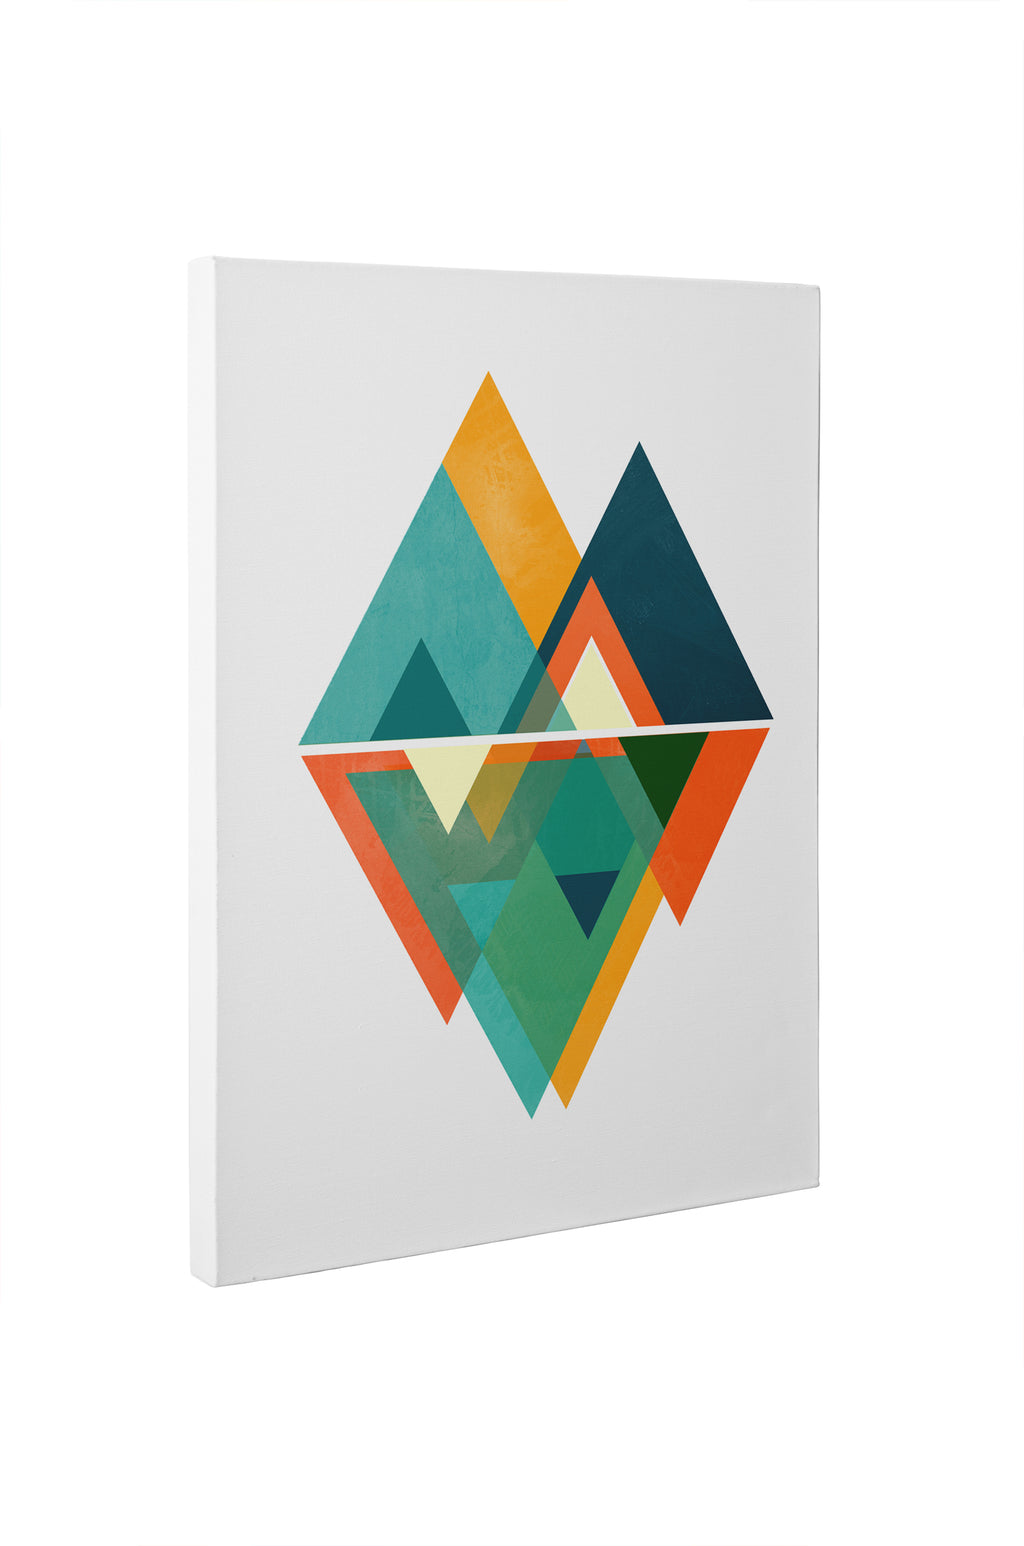 NEW TRIANGLES Canvas Art By Honeytree Prints